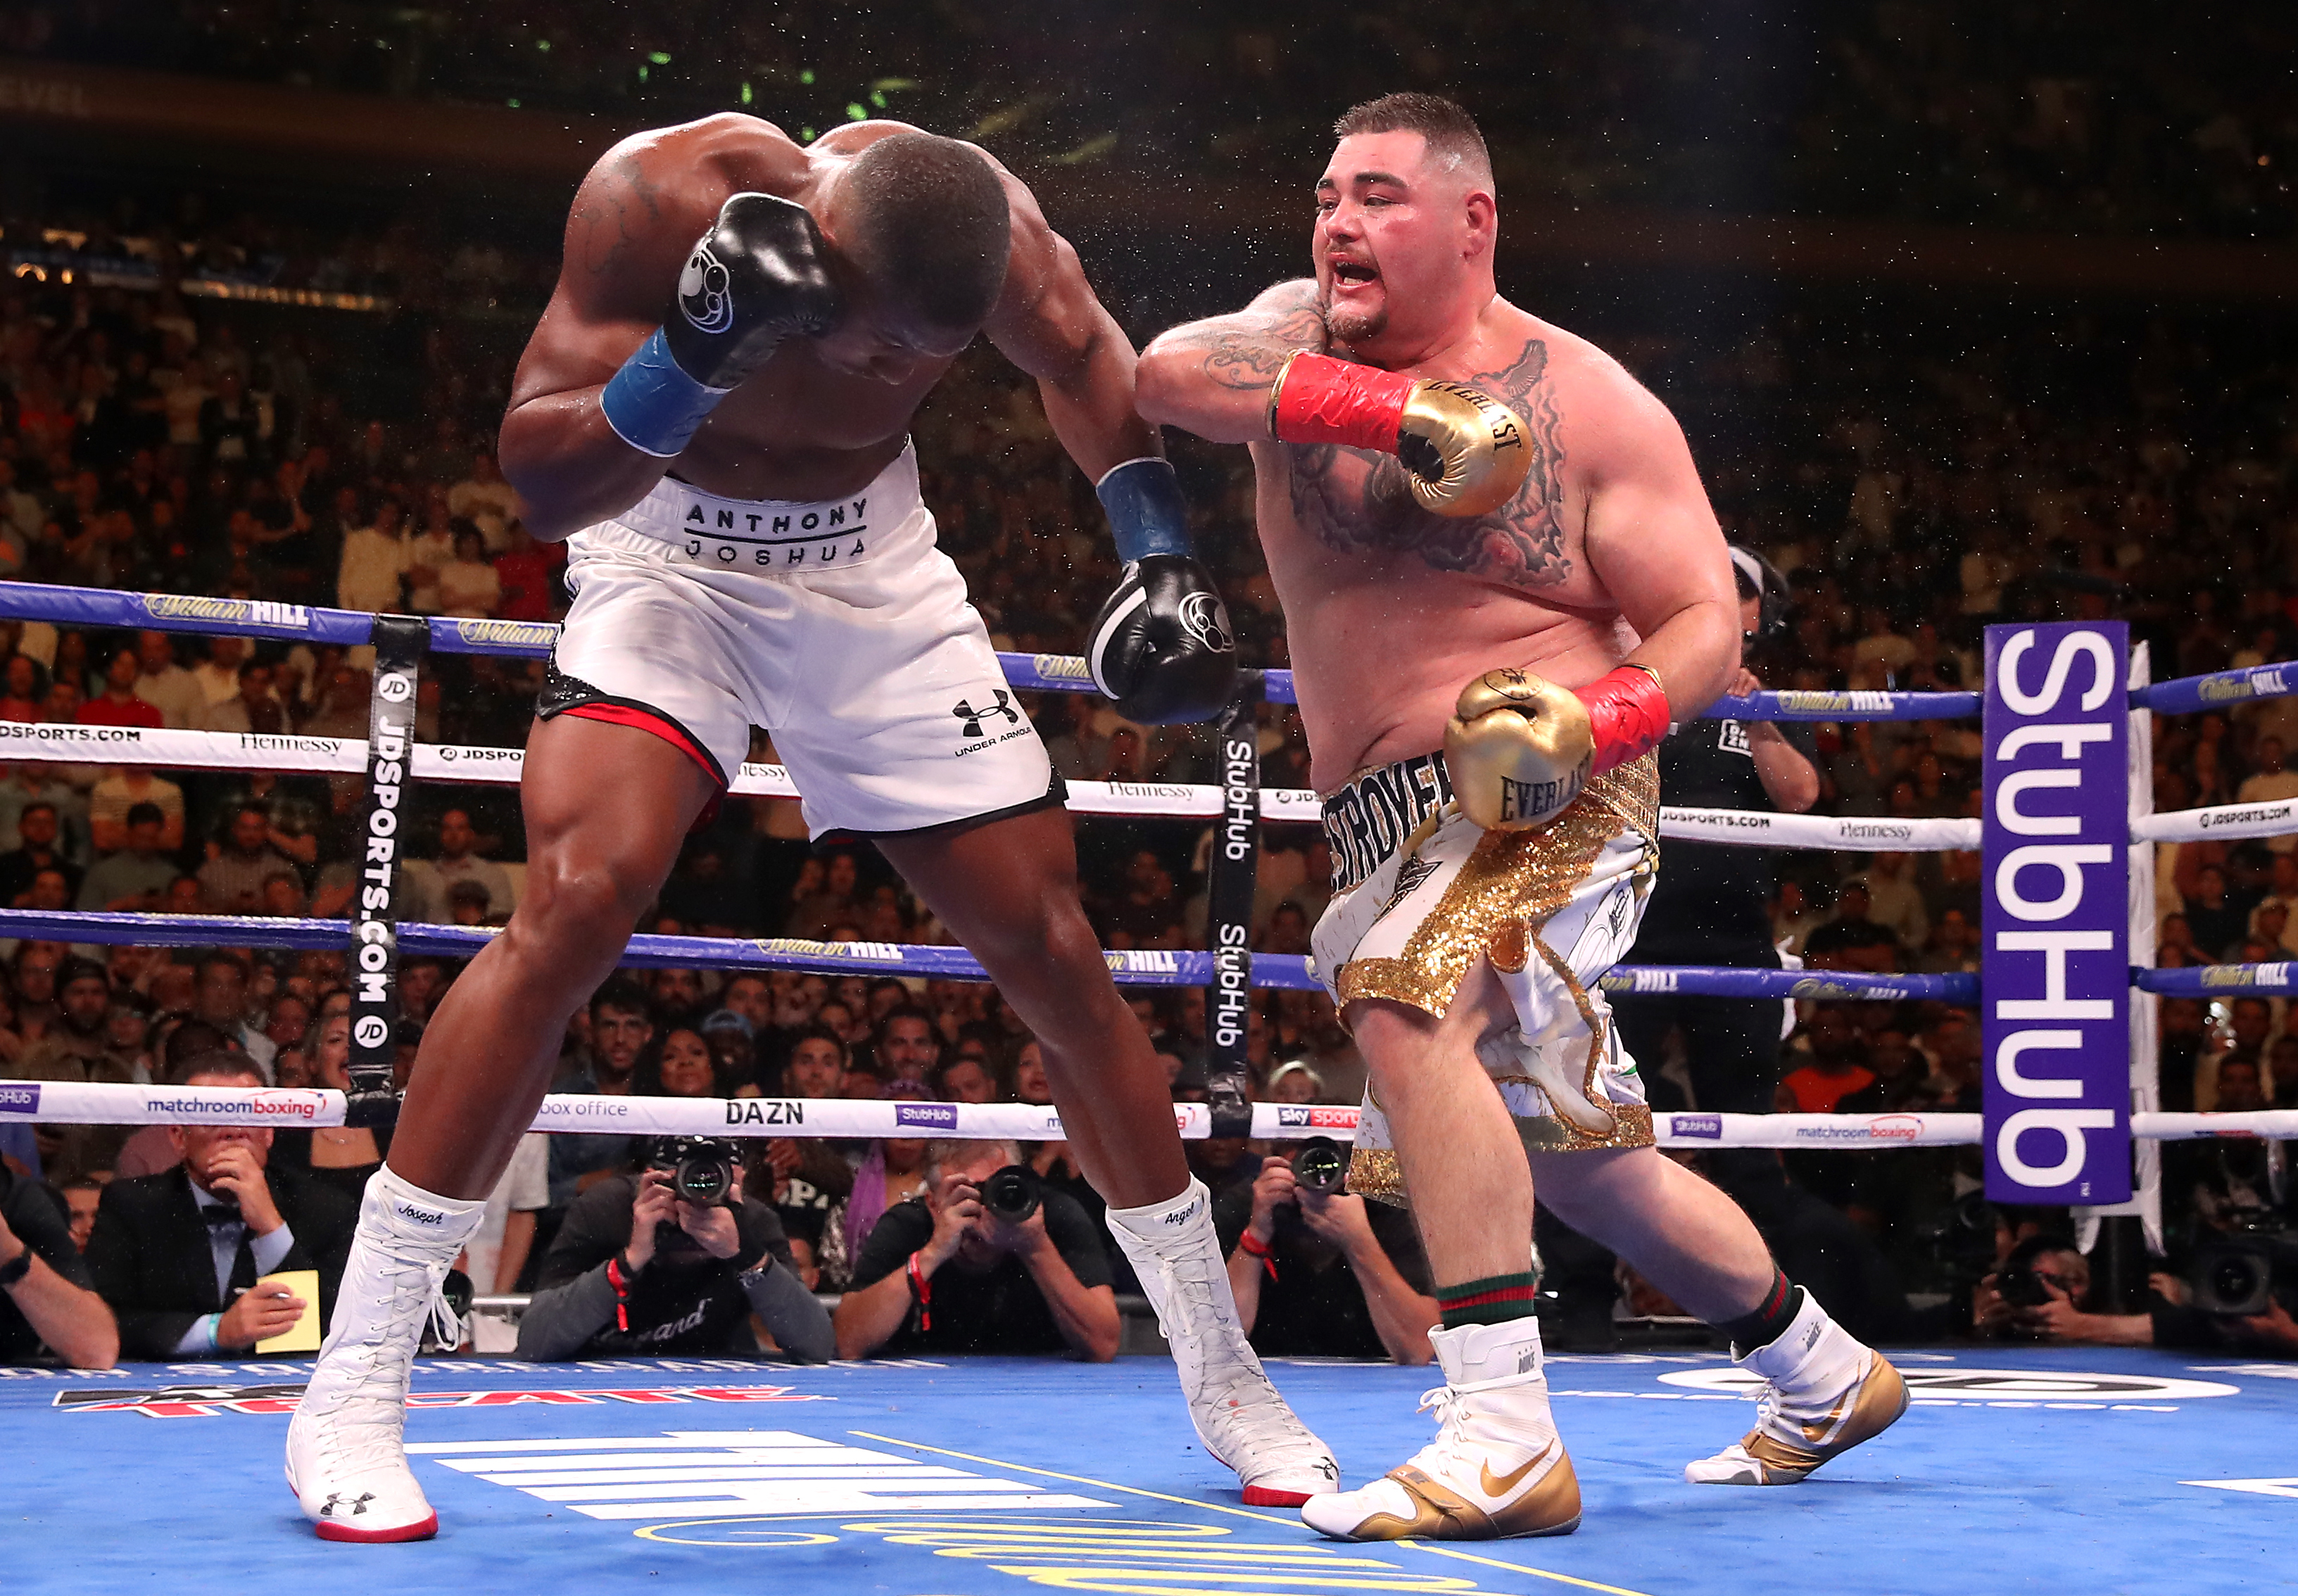 Ruiz-Joshua rematch to be December 7 in Saudi Arabia